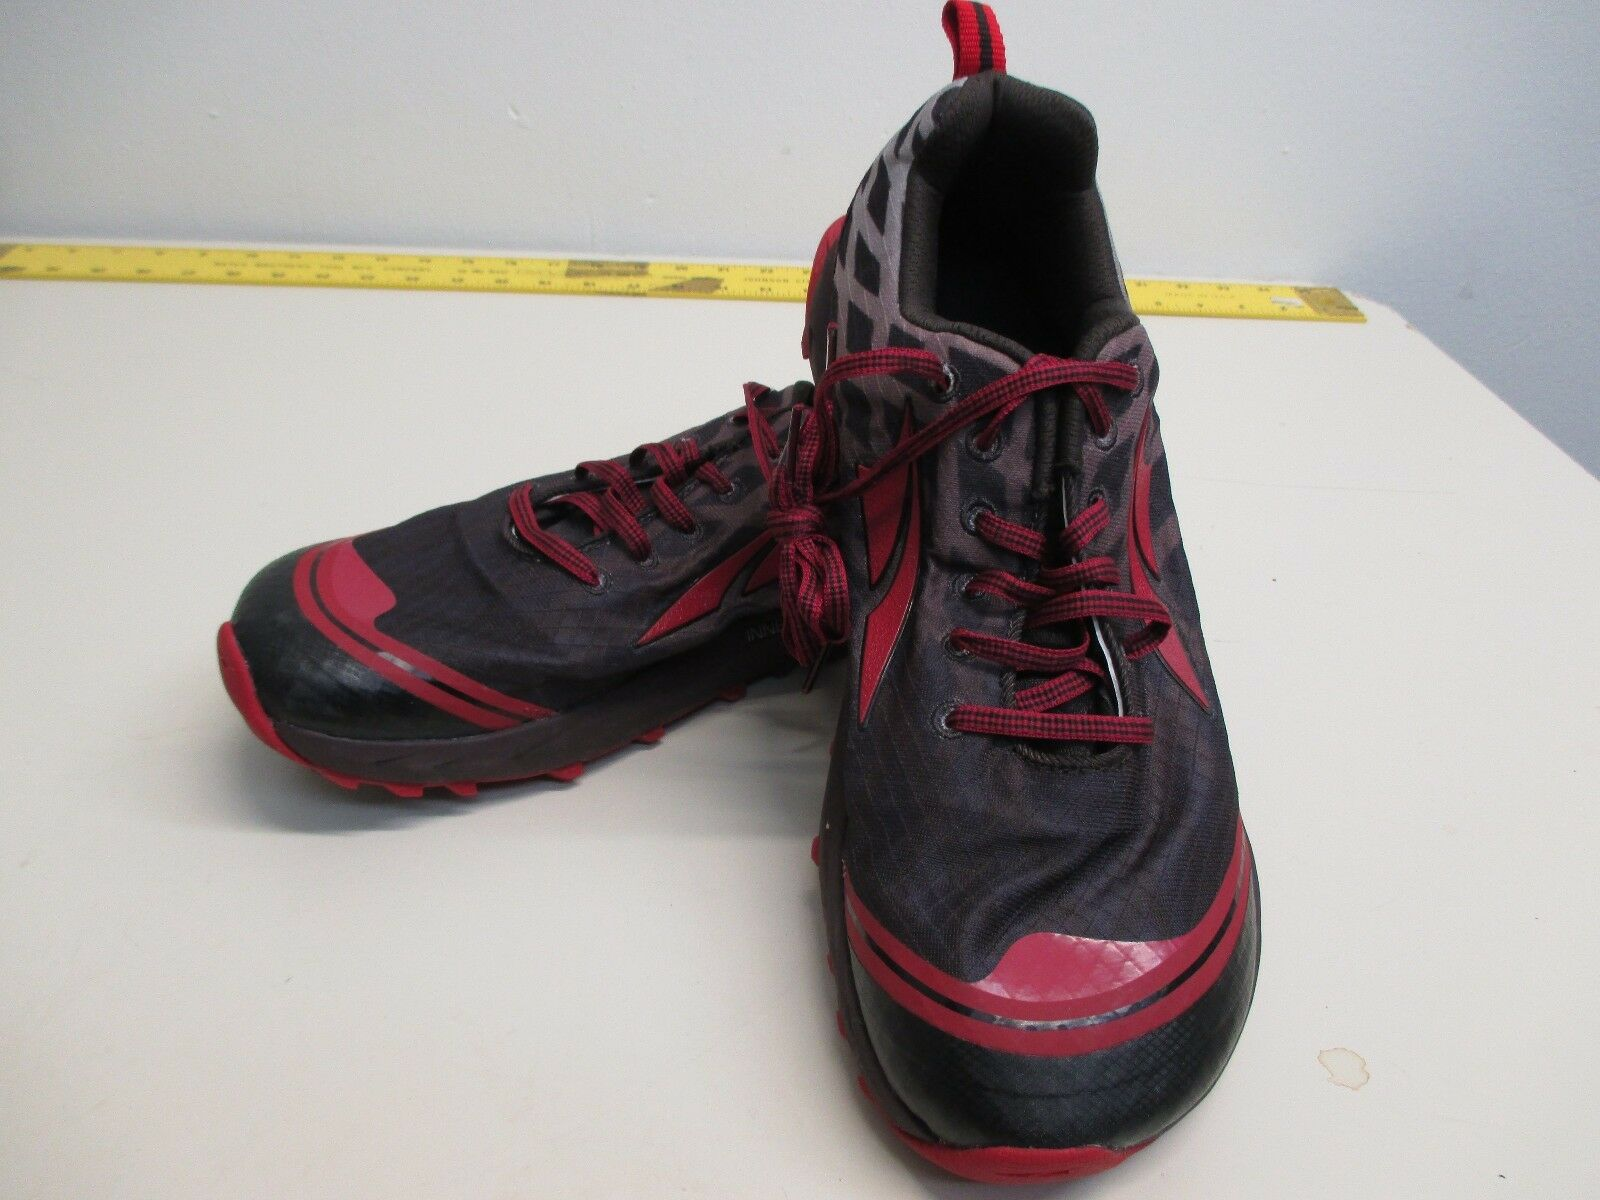 NWOB ALTRA Zero Drop Inner Flex Gaiter Trap Men's Running shoes A1652-1 Sz 10.5